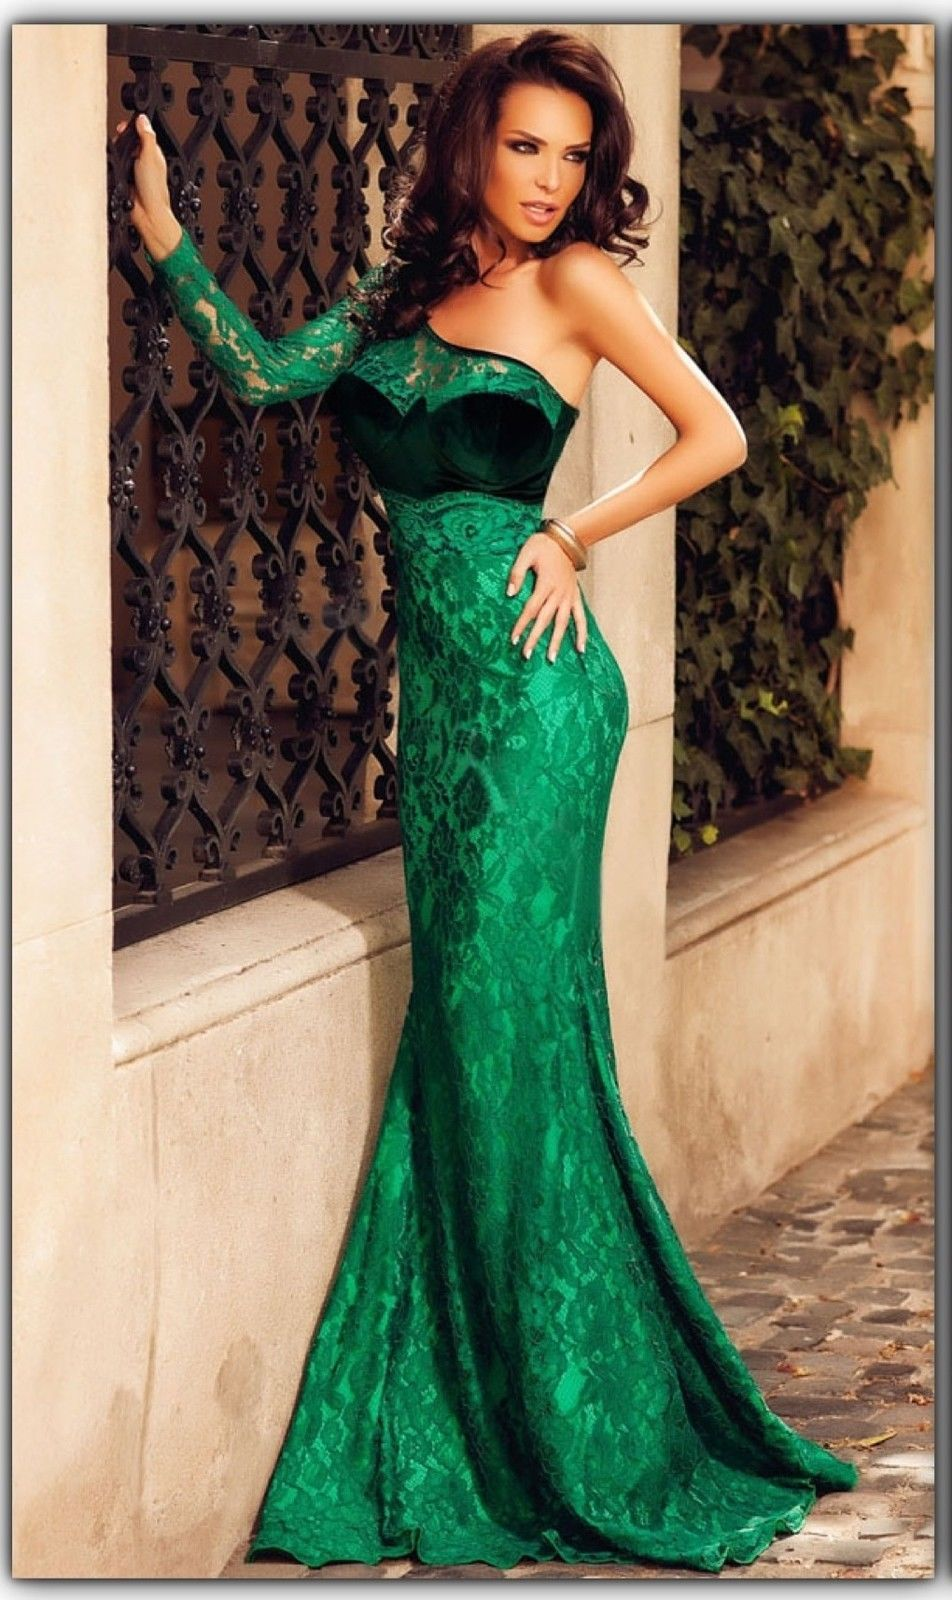 New green velvet lace bridesmaid formal gown ball party for Velvet and lace wedding dresses